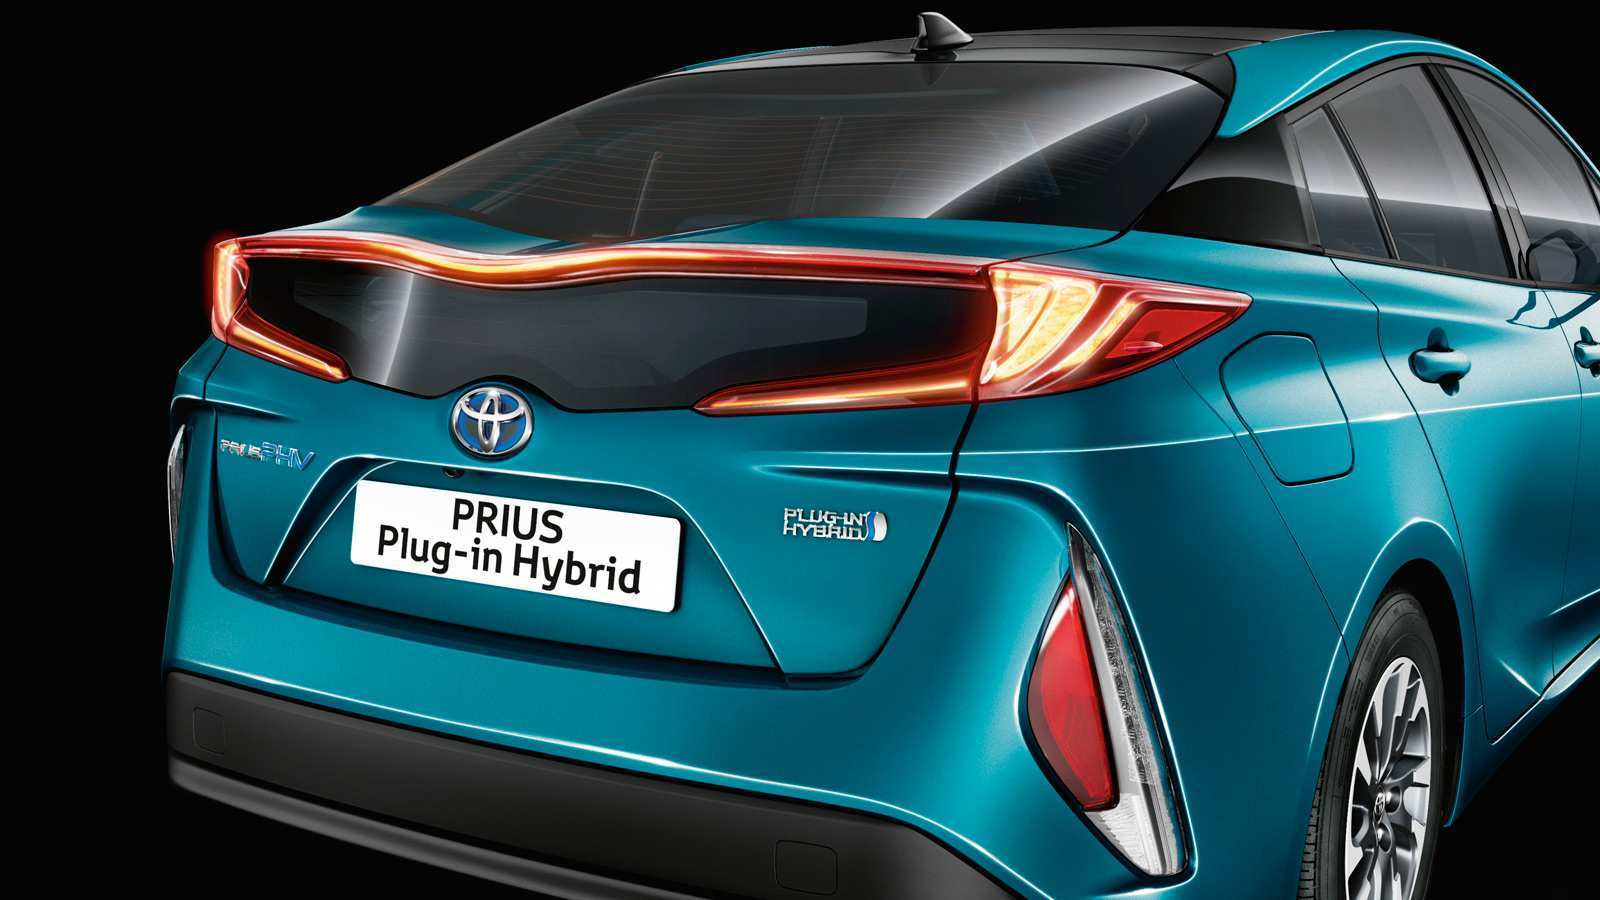 98 New 2019 Toyota Prius Plug In Hybrid Concept And Review